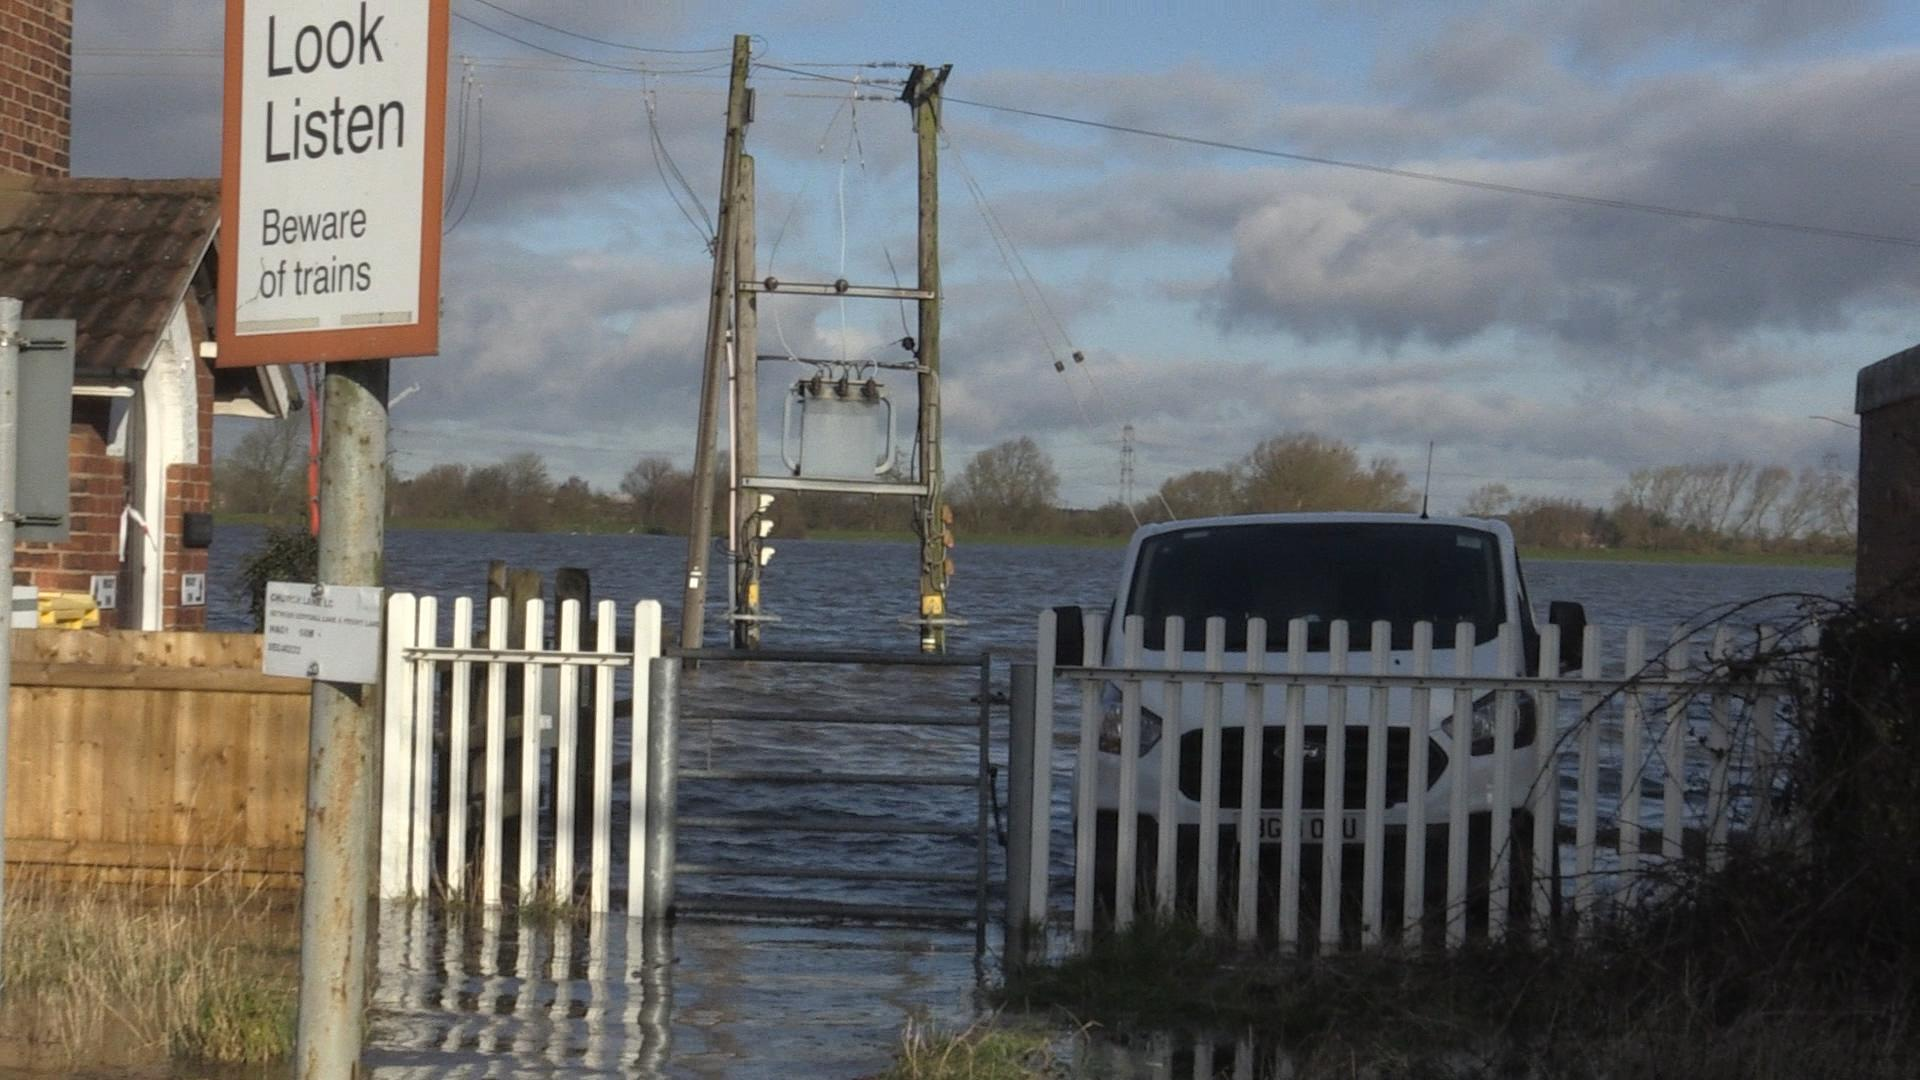 A powerline underwater in Snaith, East Riding of Yorkshire, where locals have criticised the lack of help they have received from the authorities.